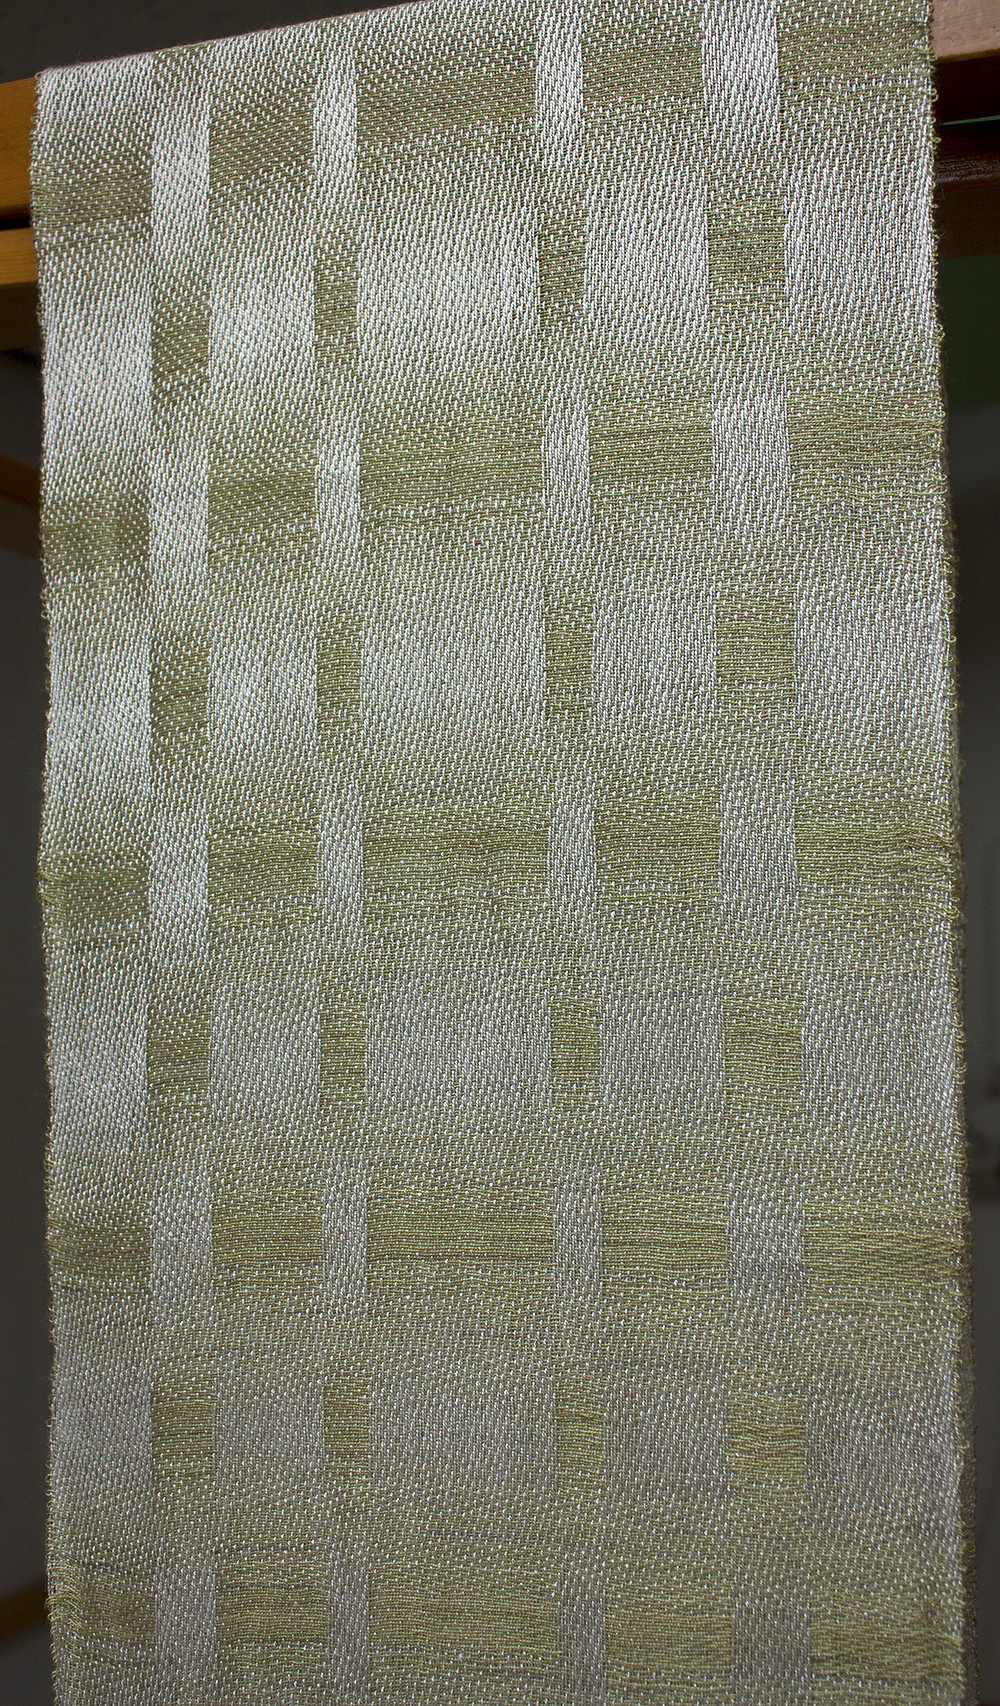 close up of green and white scarf